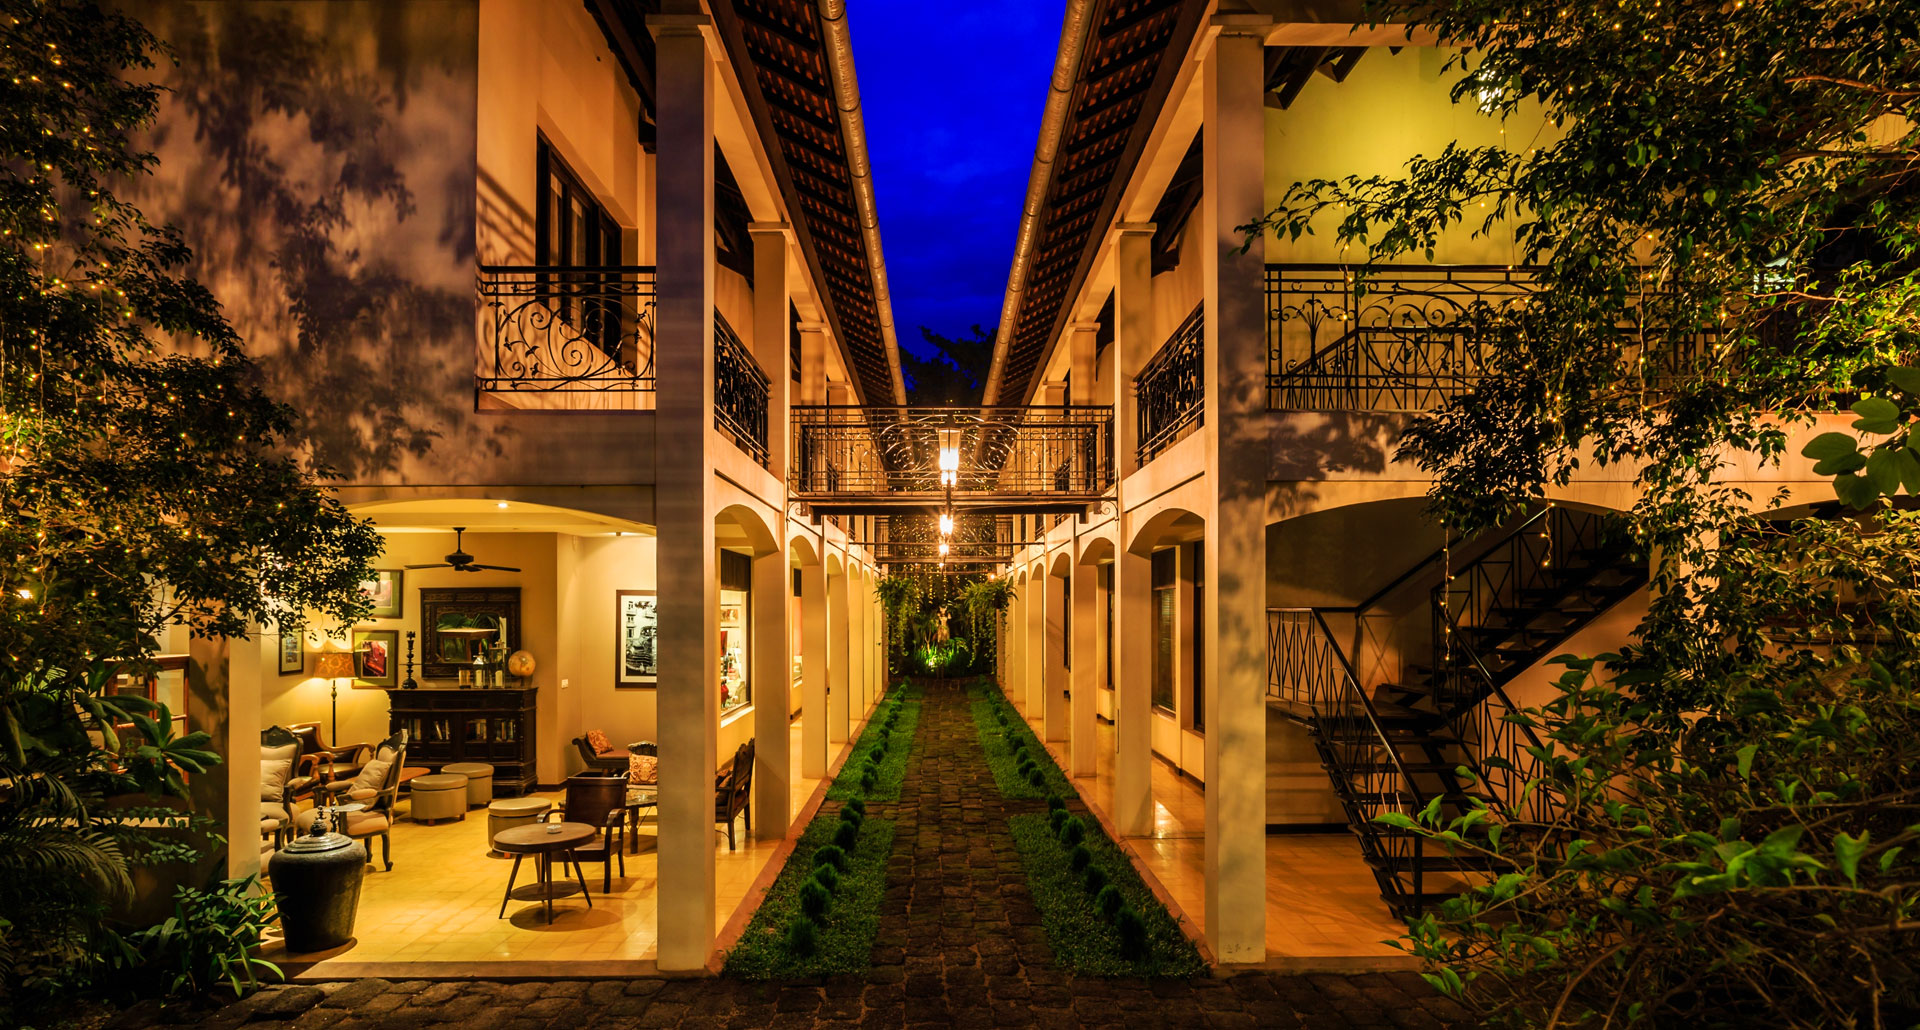 Heritage Suites Hotel - boutique hotel in Siem Reap